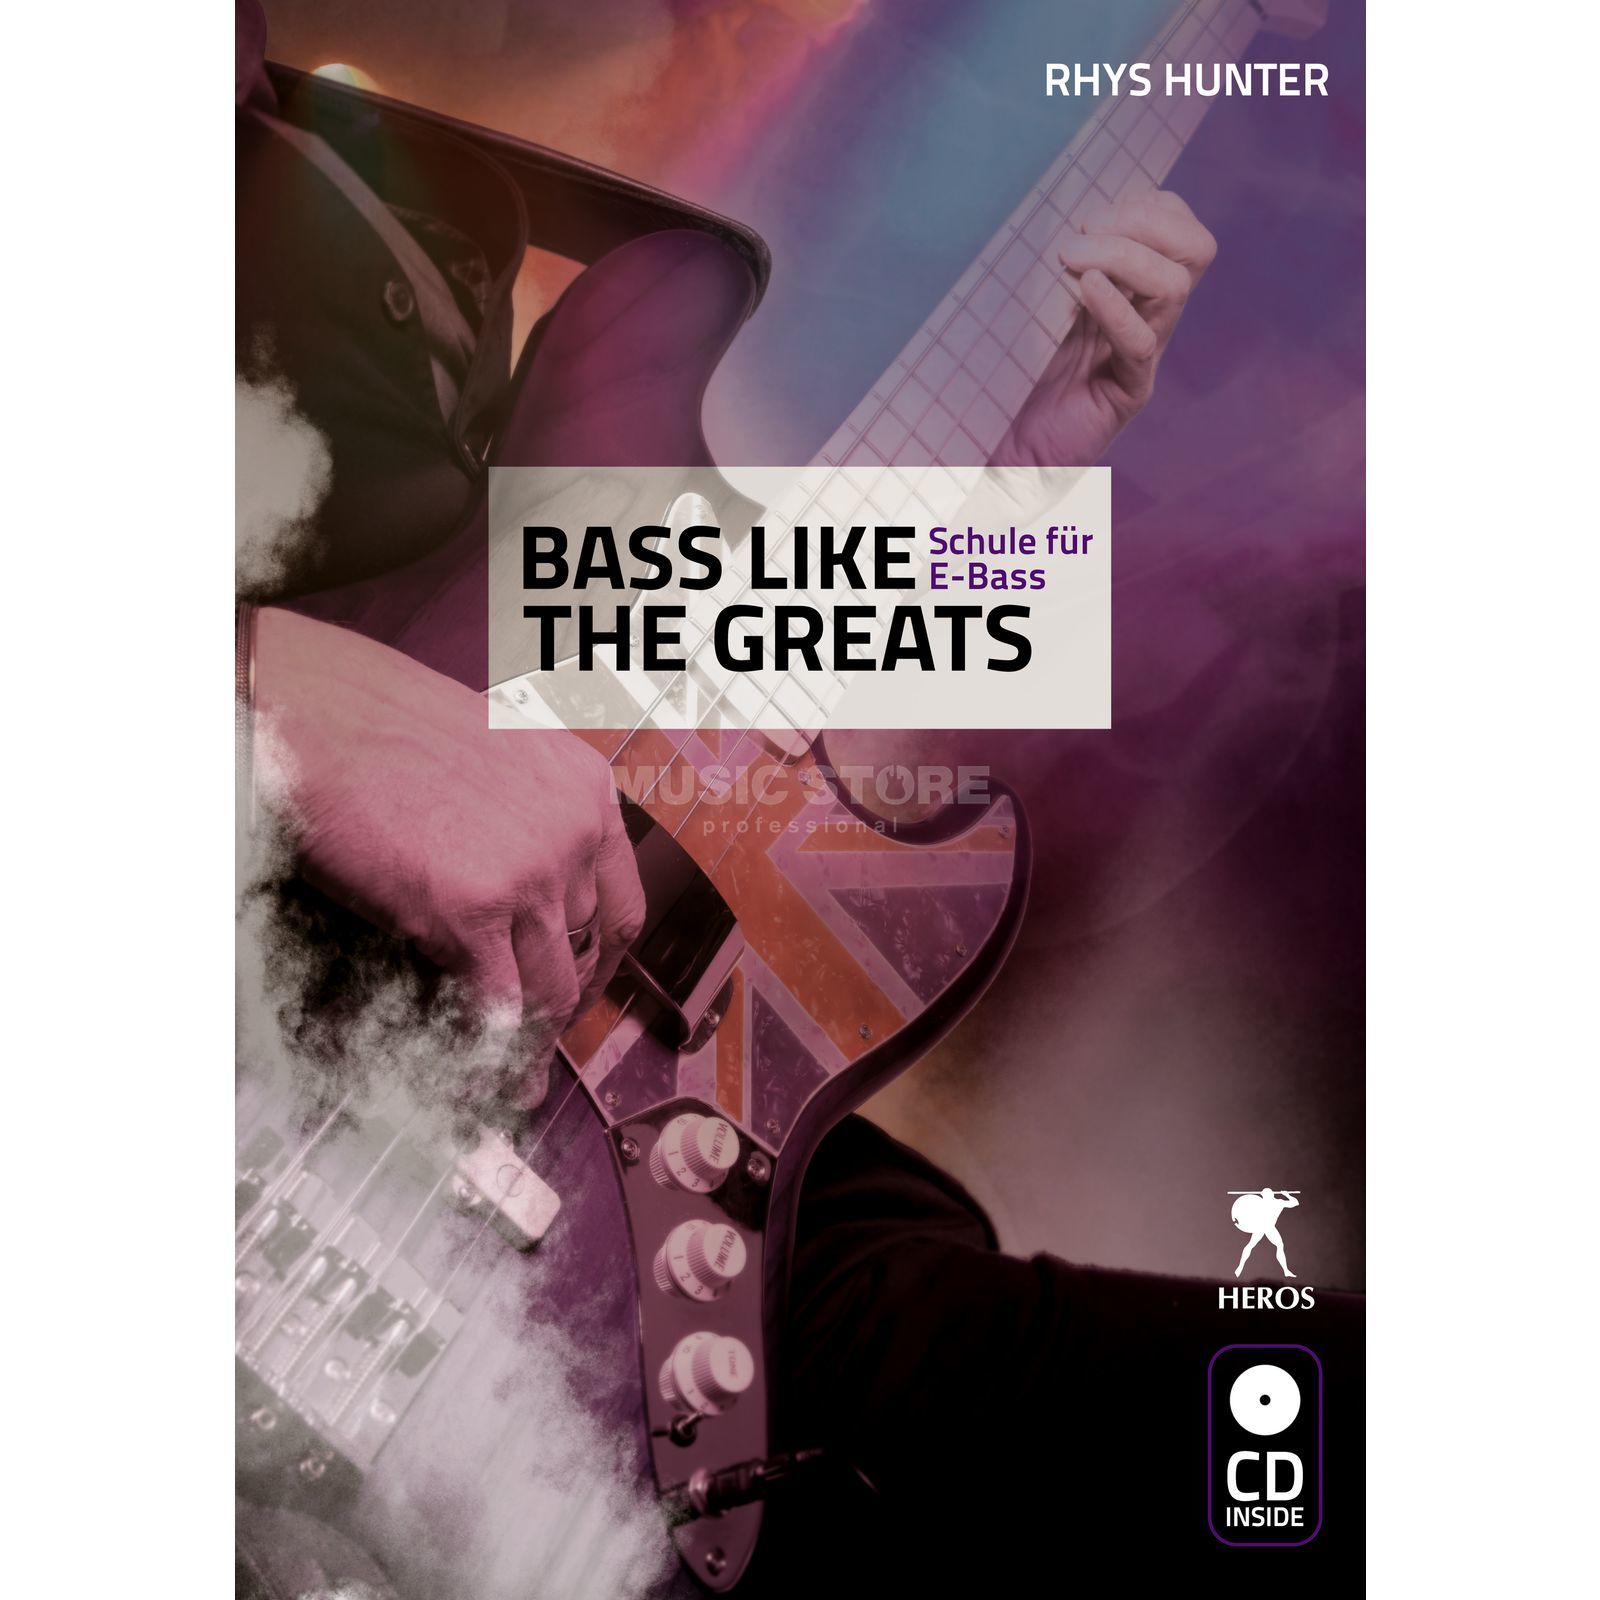 Heros-Verlag Bass Like The Greats Rhys Hunter,inkl. CD Produktbillede